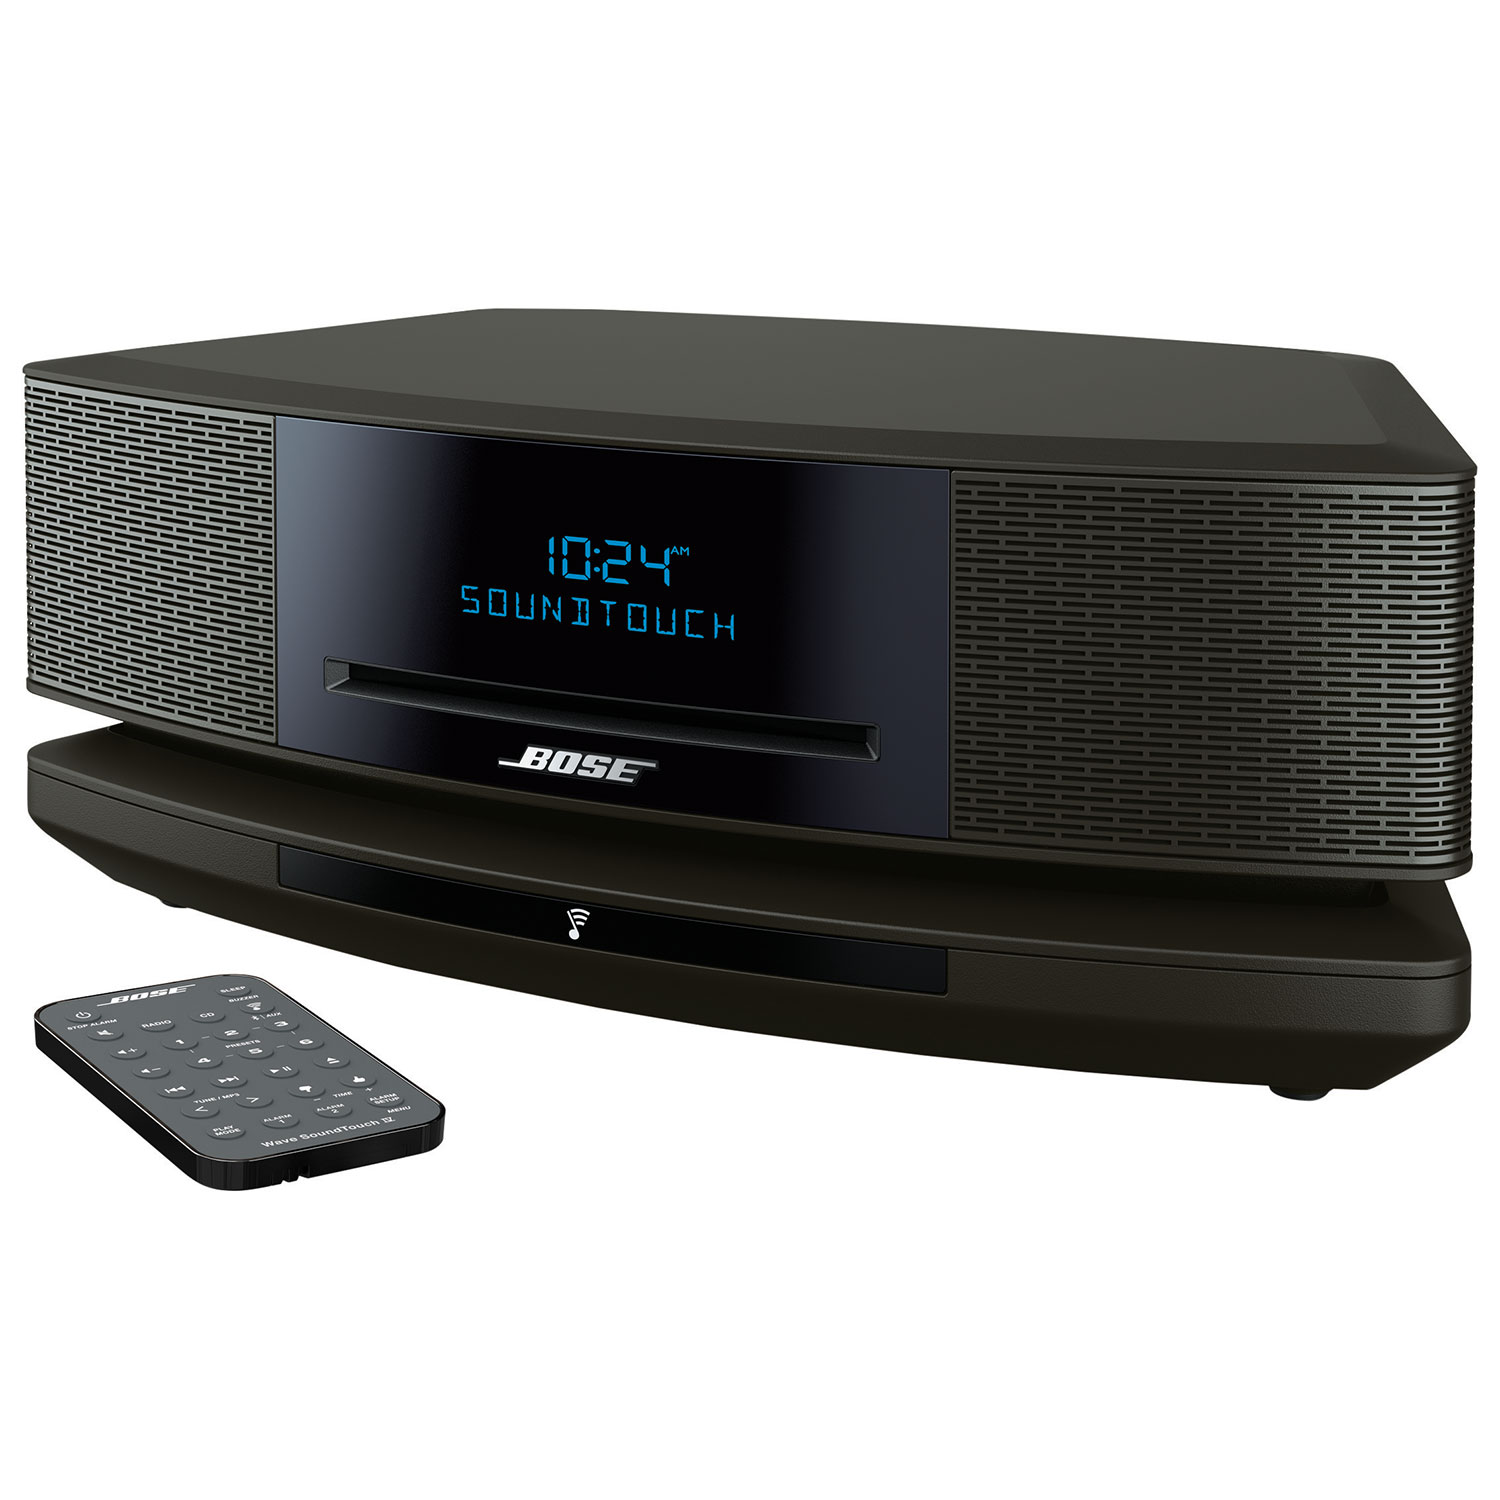 Bose Wave SoundTouch IV Wireless Multi Room Music System   Black : Home  Speakers   Best Buy Canada